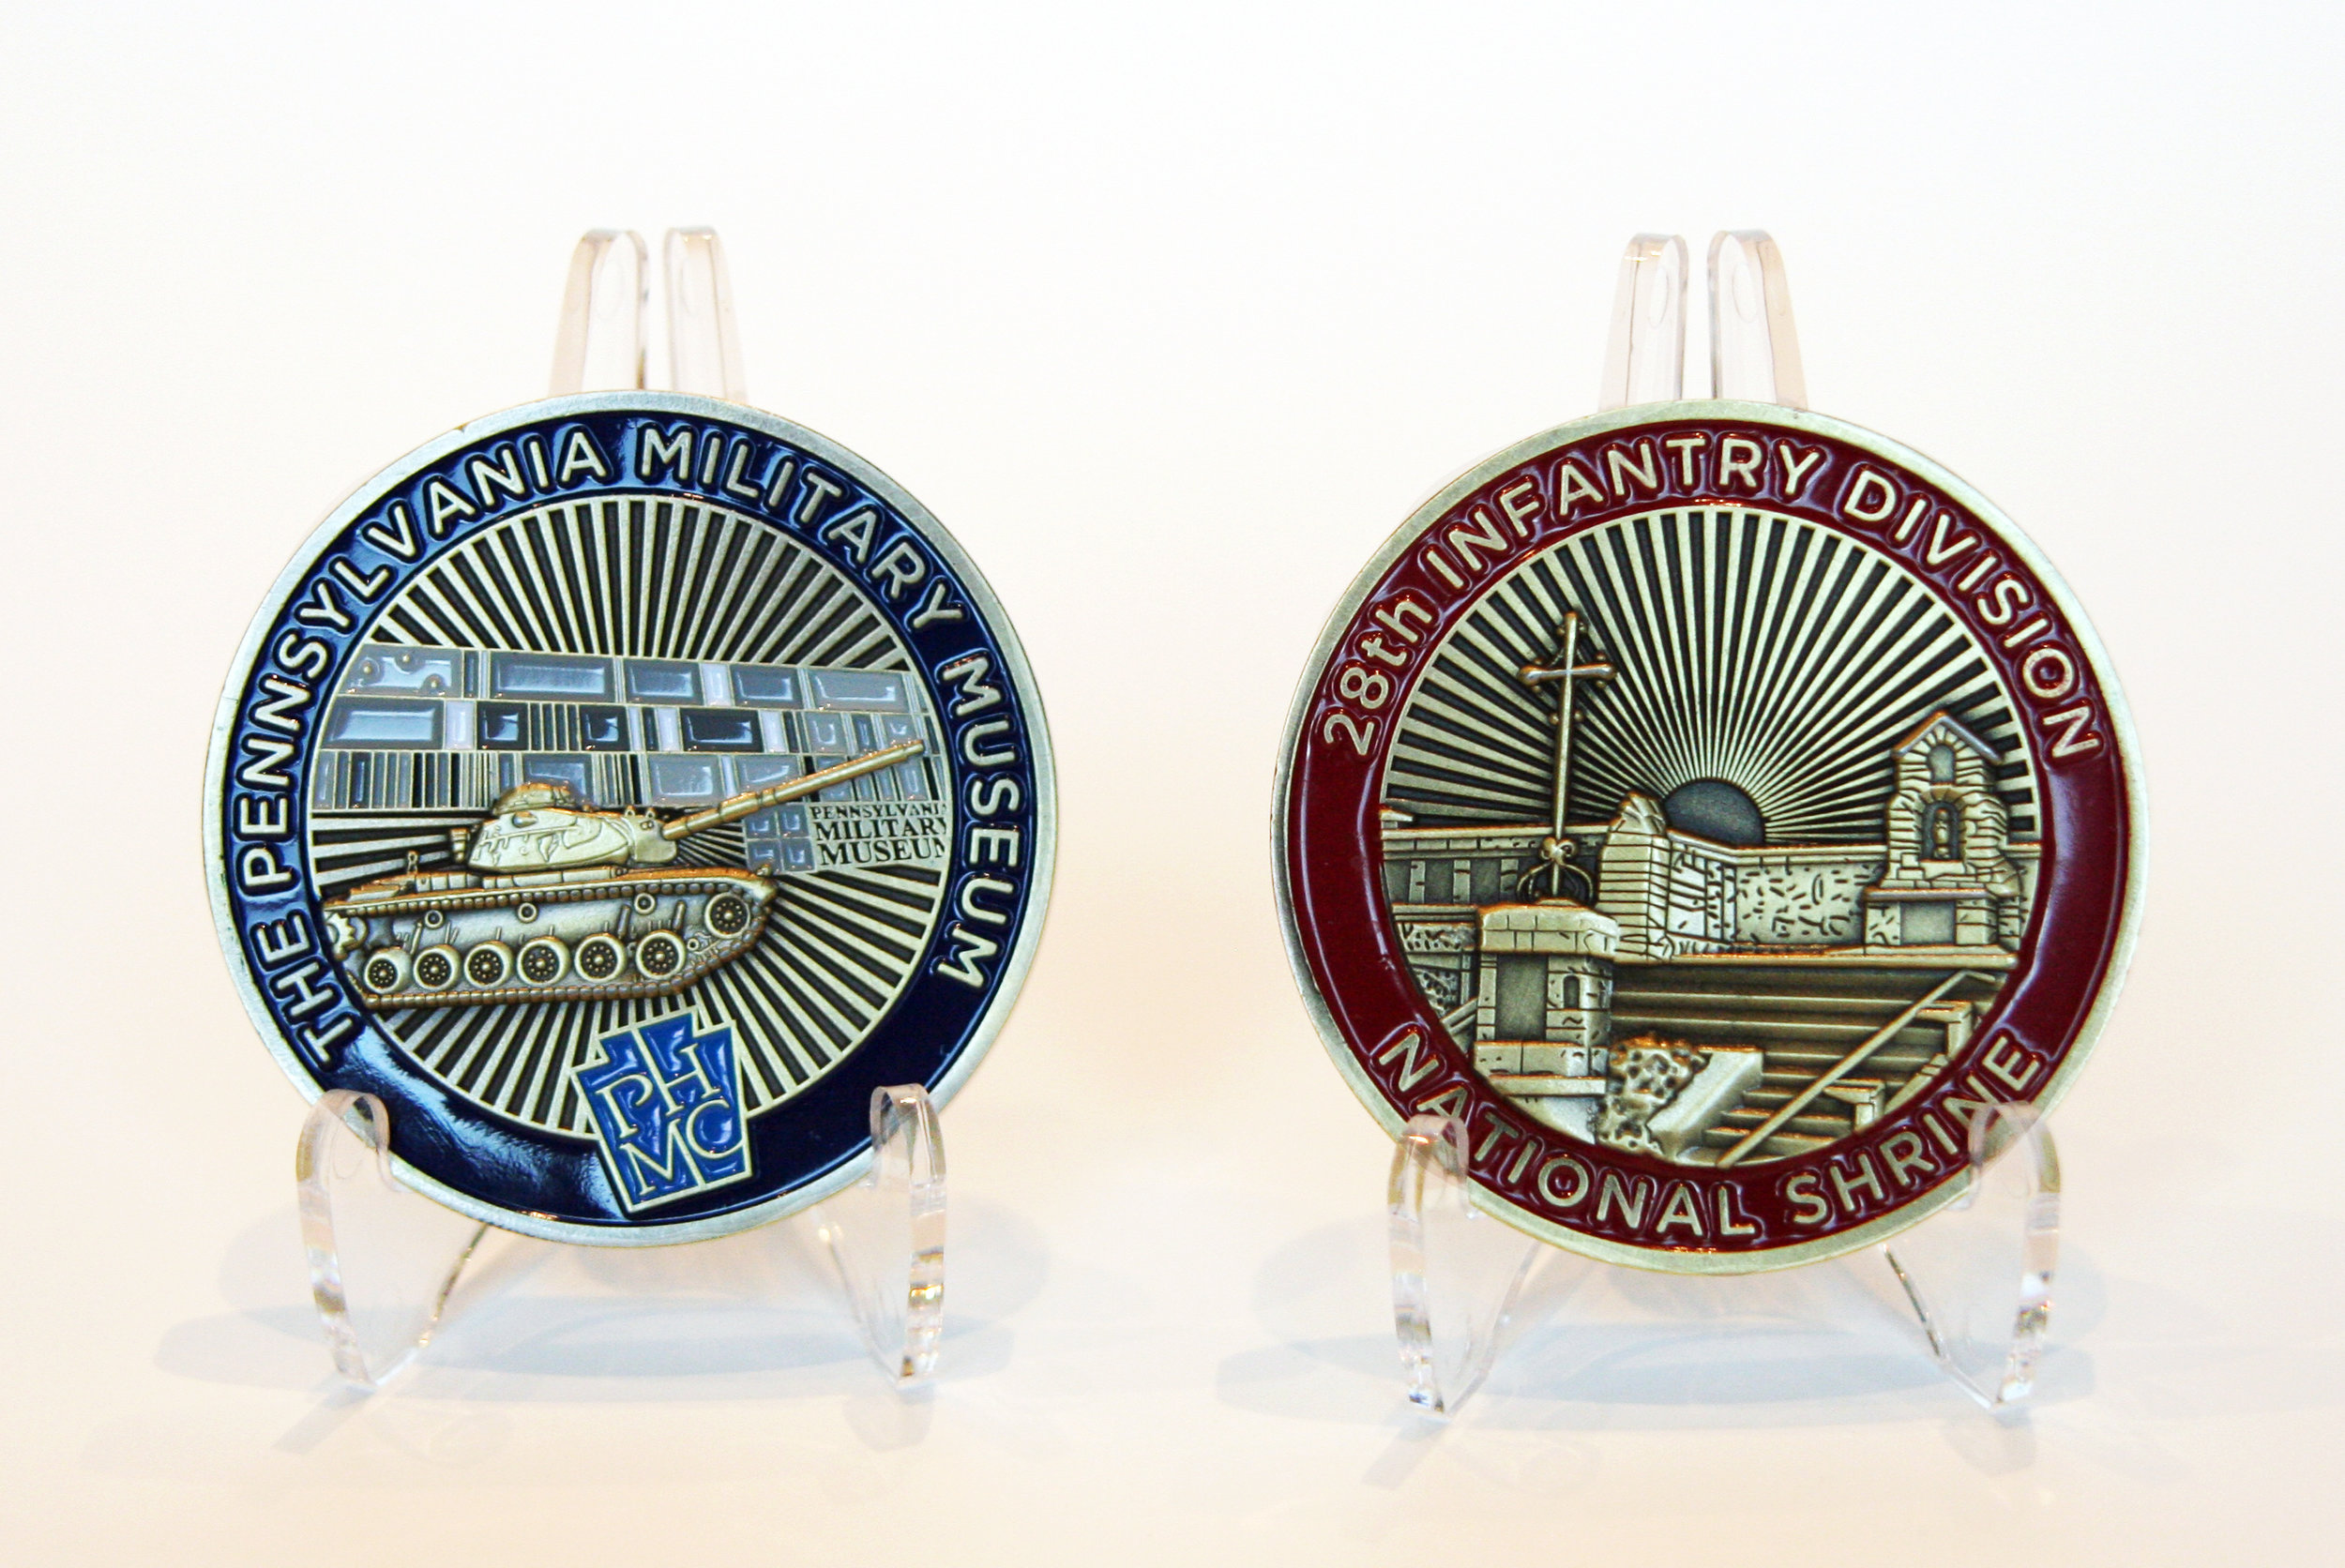 The official Pennsylvania Military Museum & 28th Infantry Division National Shrine challenge coin, available for purchase on our new online store!